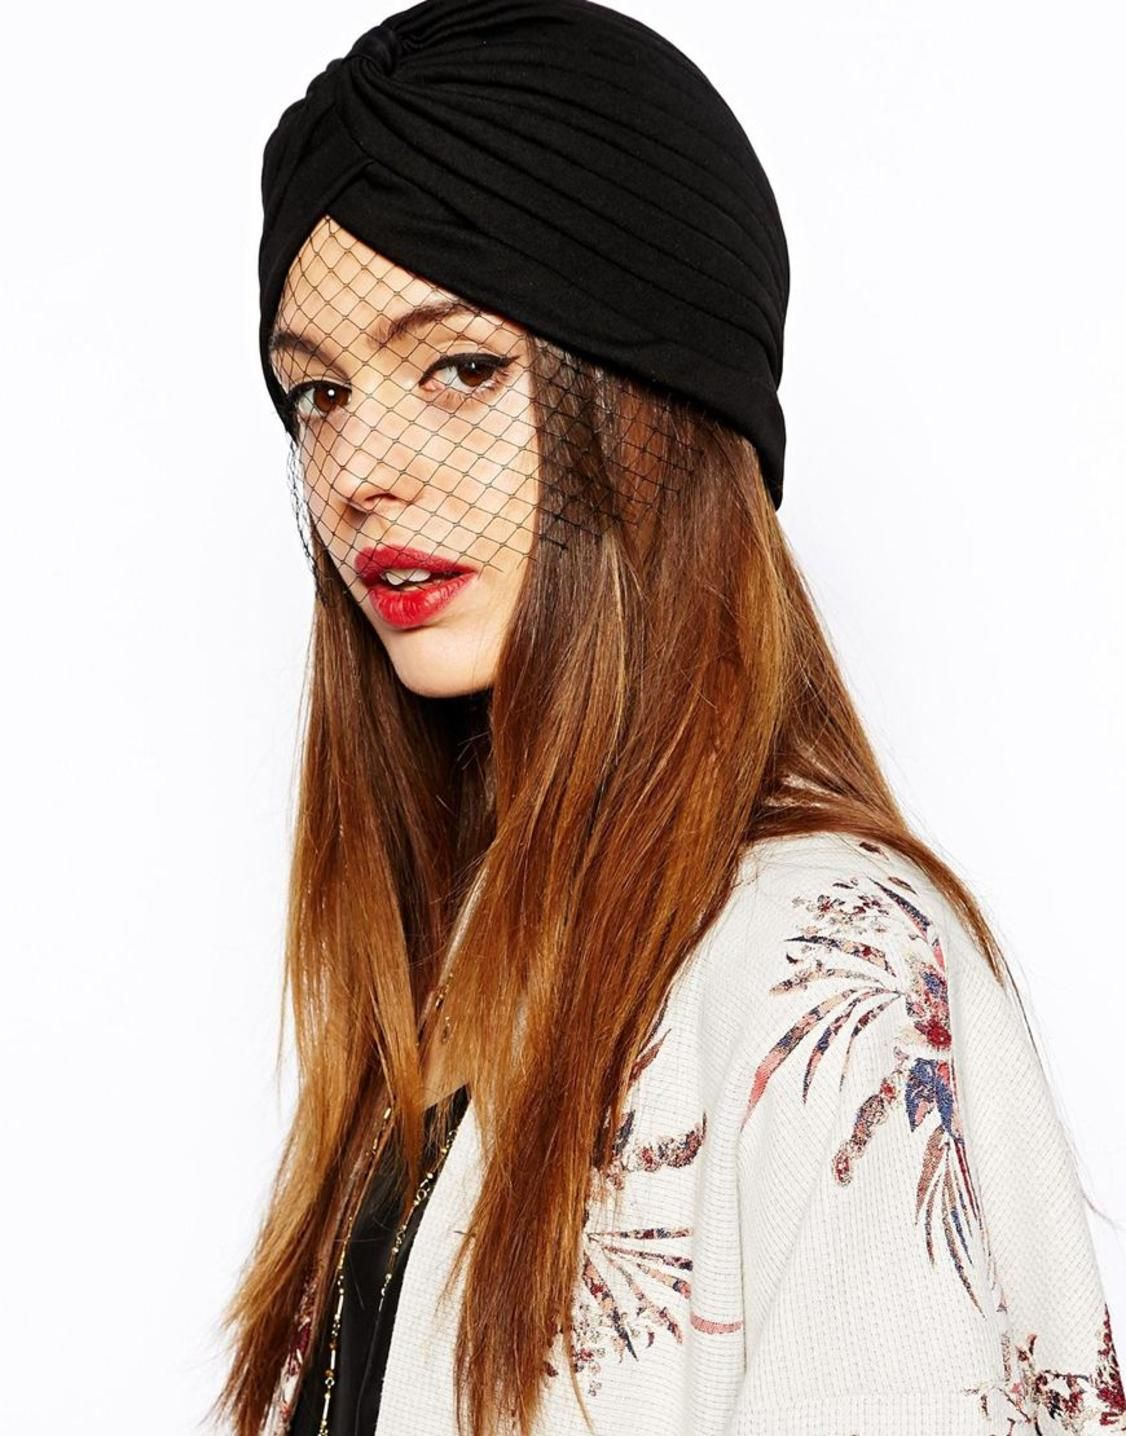 15+ Women's Hat Trend Forecast For Winter & Fall of 2020